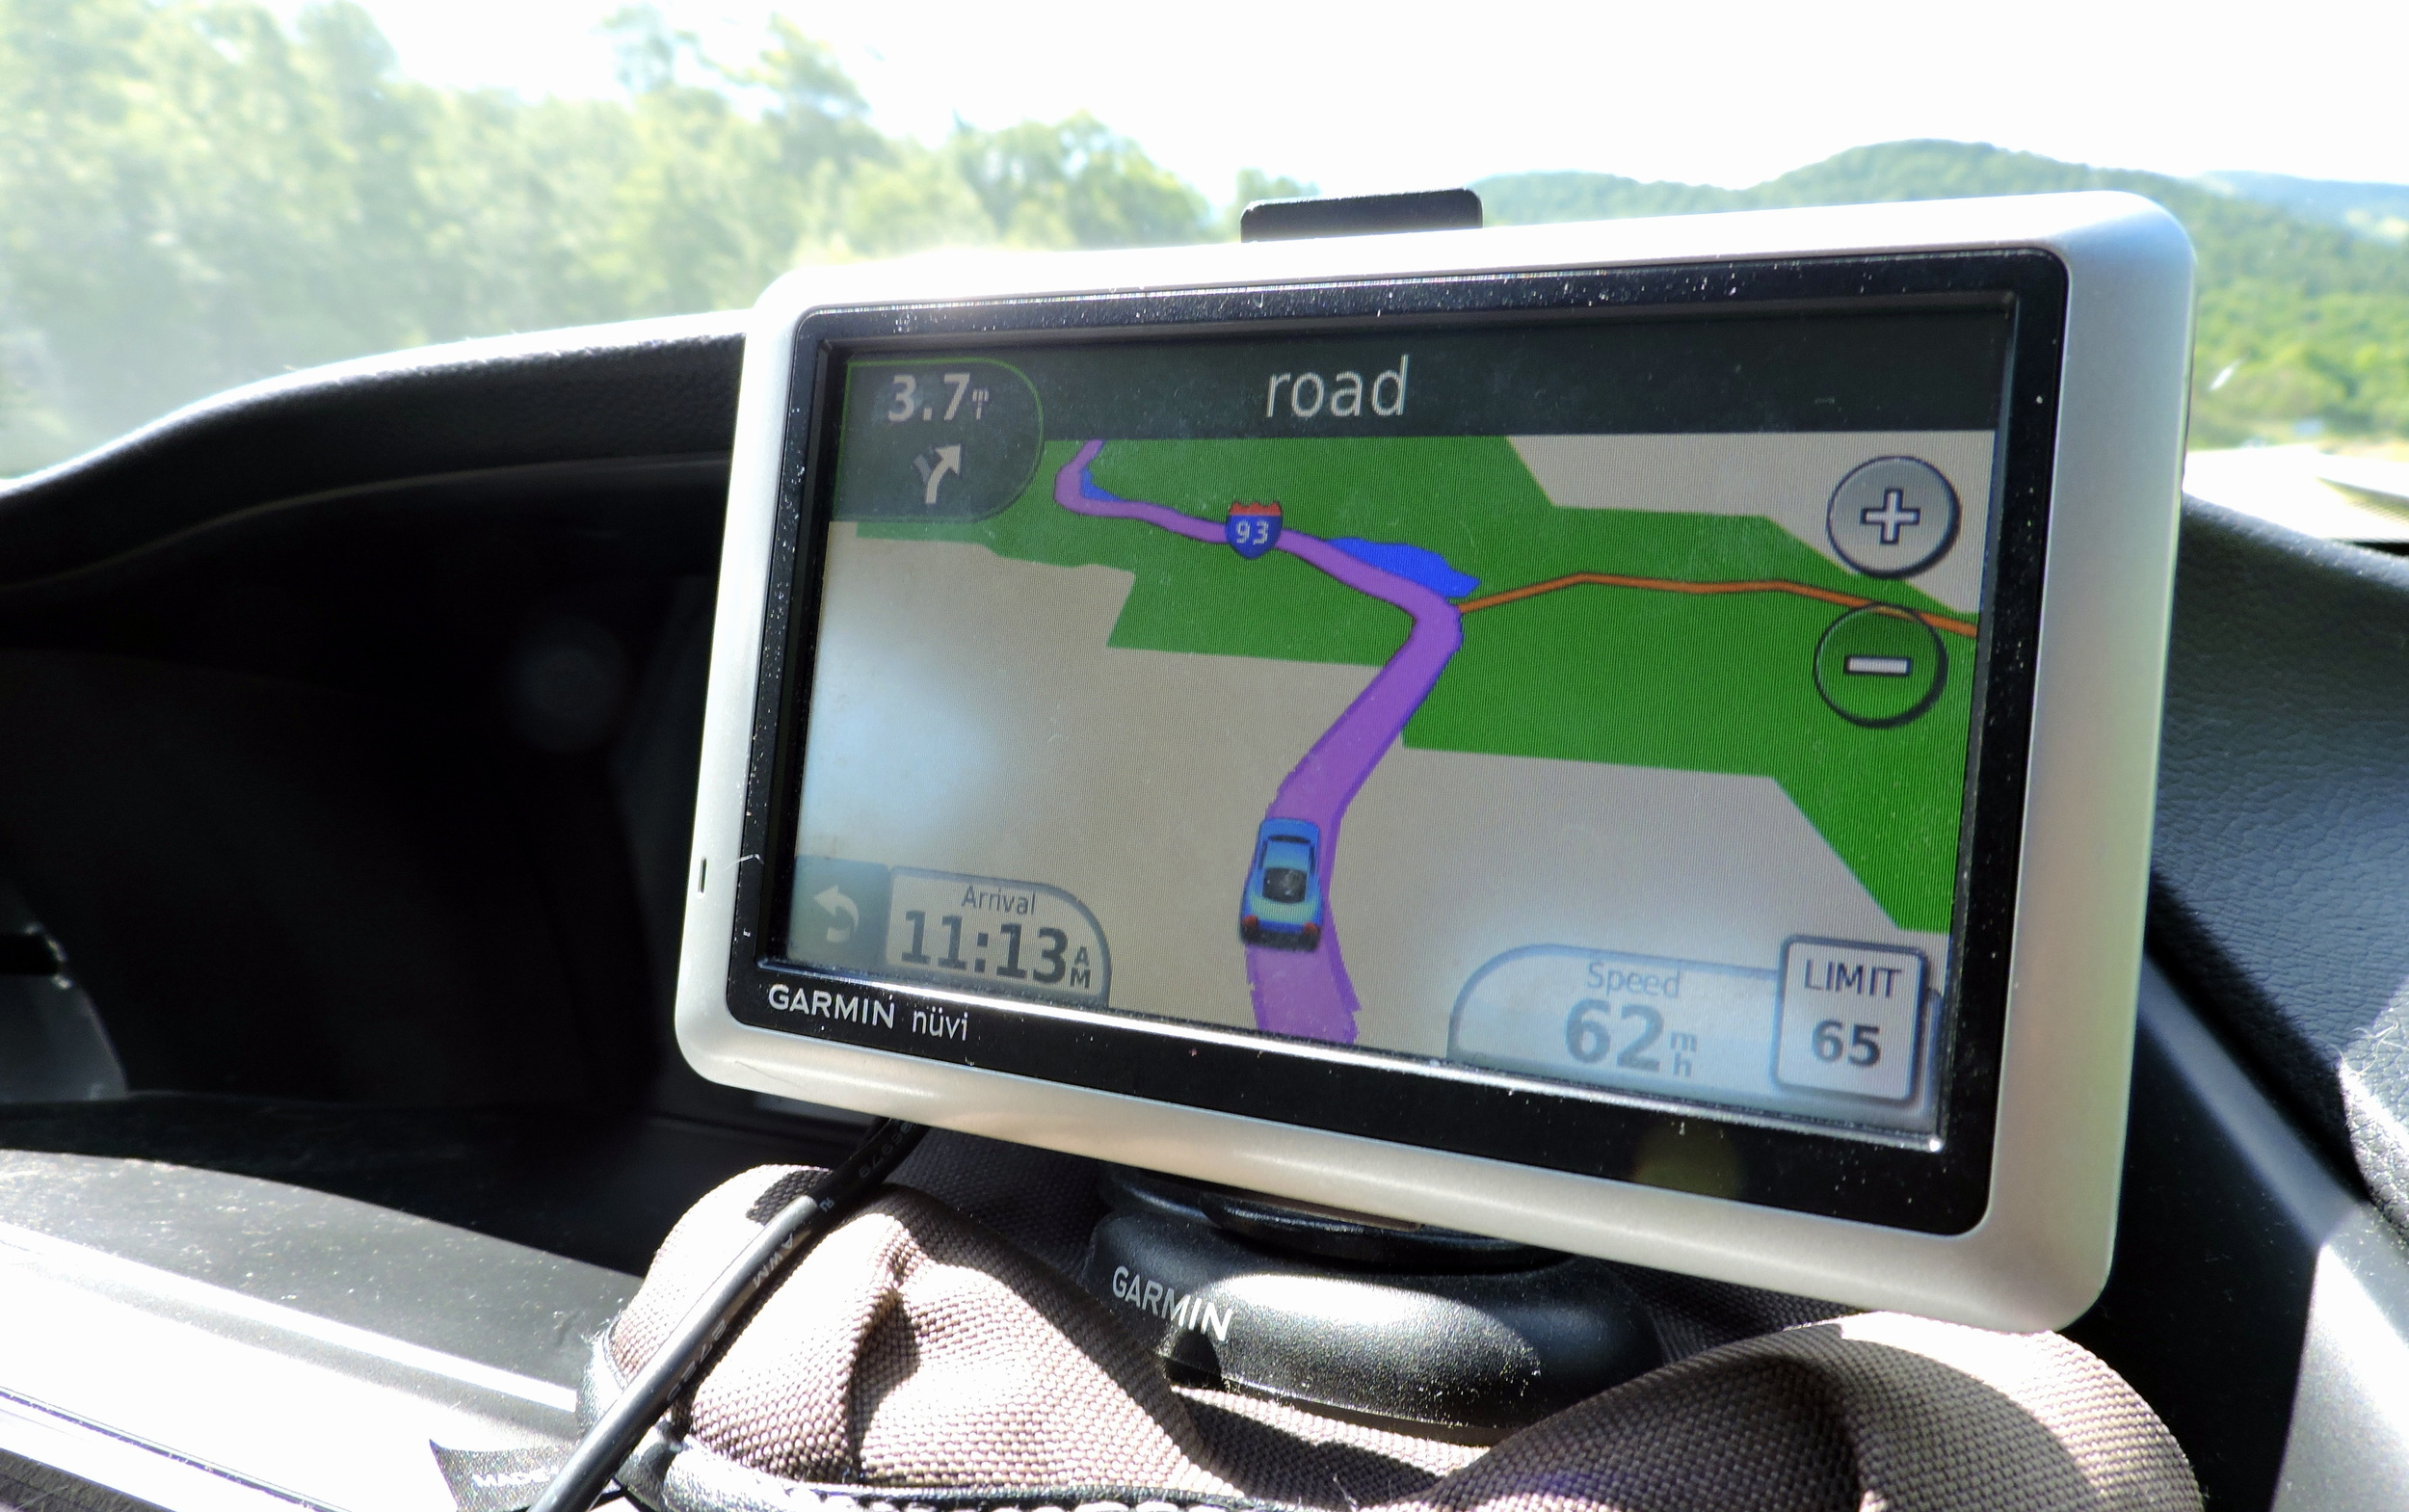 """The GPS helpfully indicates that our next turn is """"road."""""""